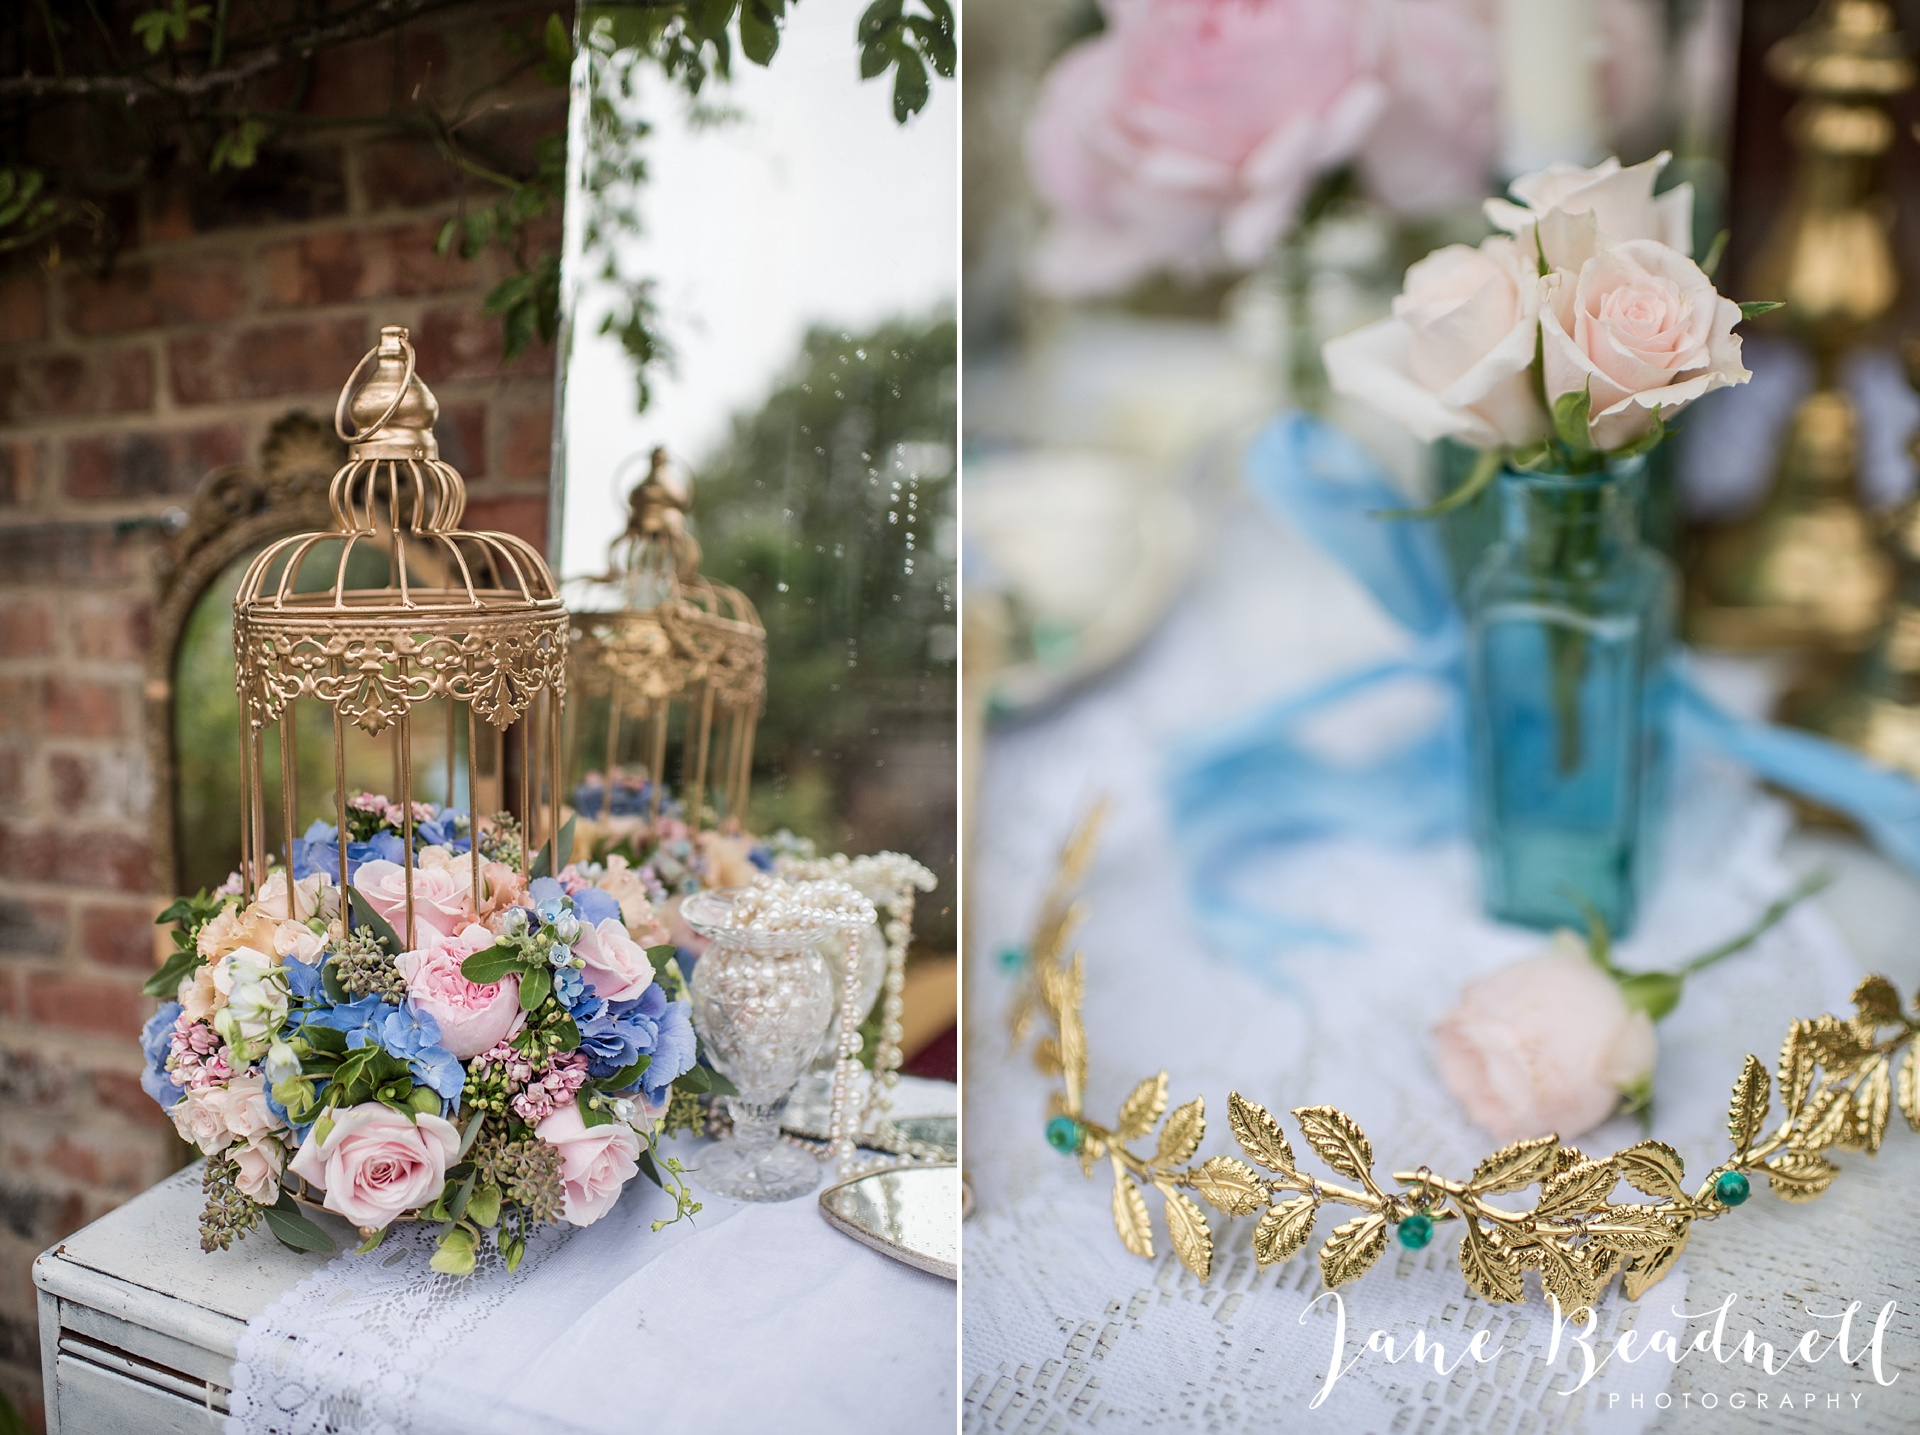 fine-art-wedding-photographer-jane-beadnell-photography-yorkshire-wedding-photographer_0002